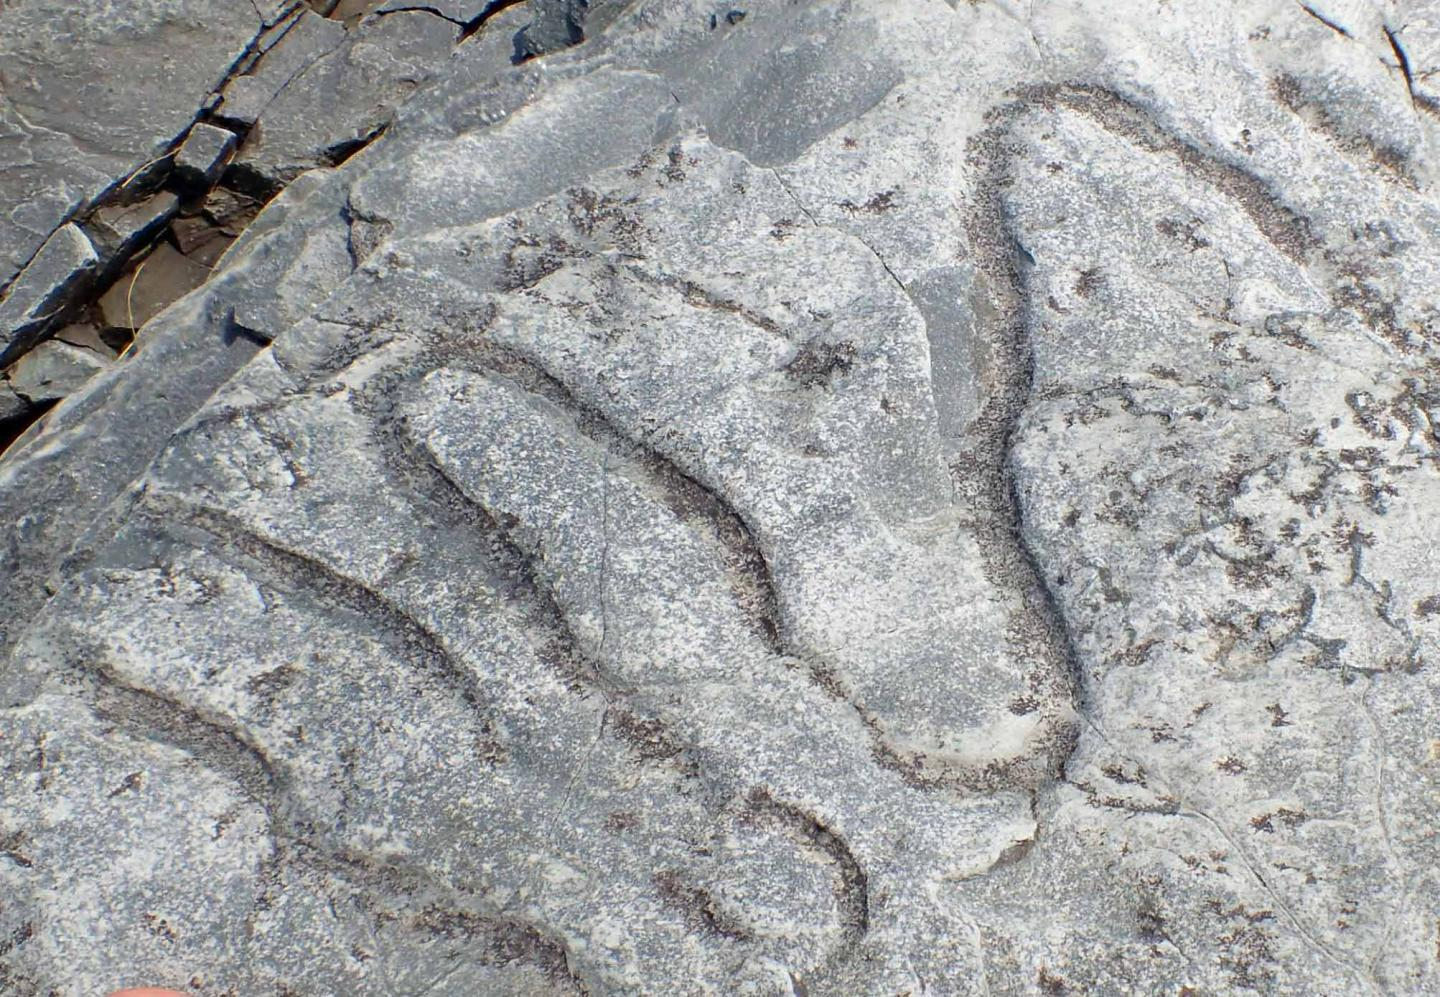 A fossilized meandering grazing trail from the Cambrian era